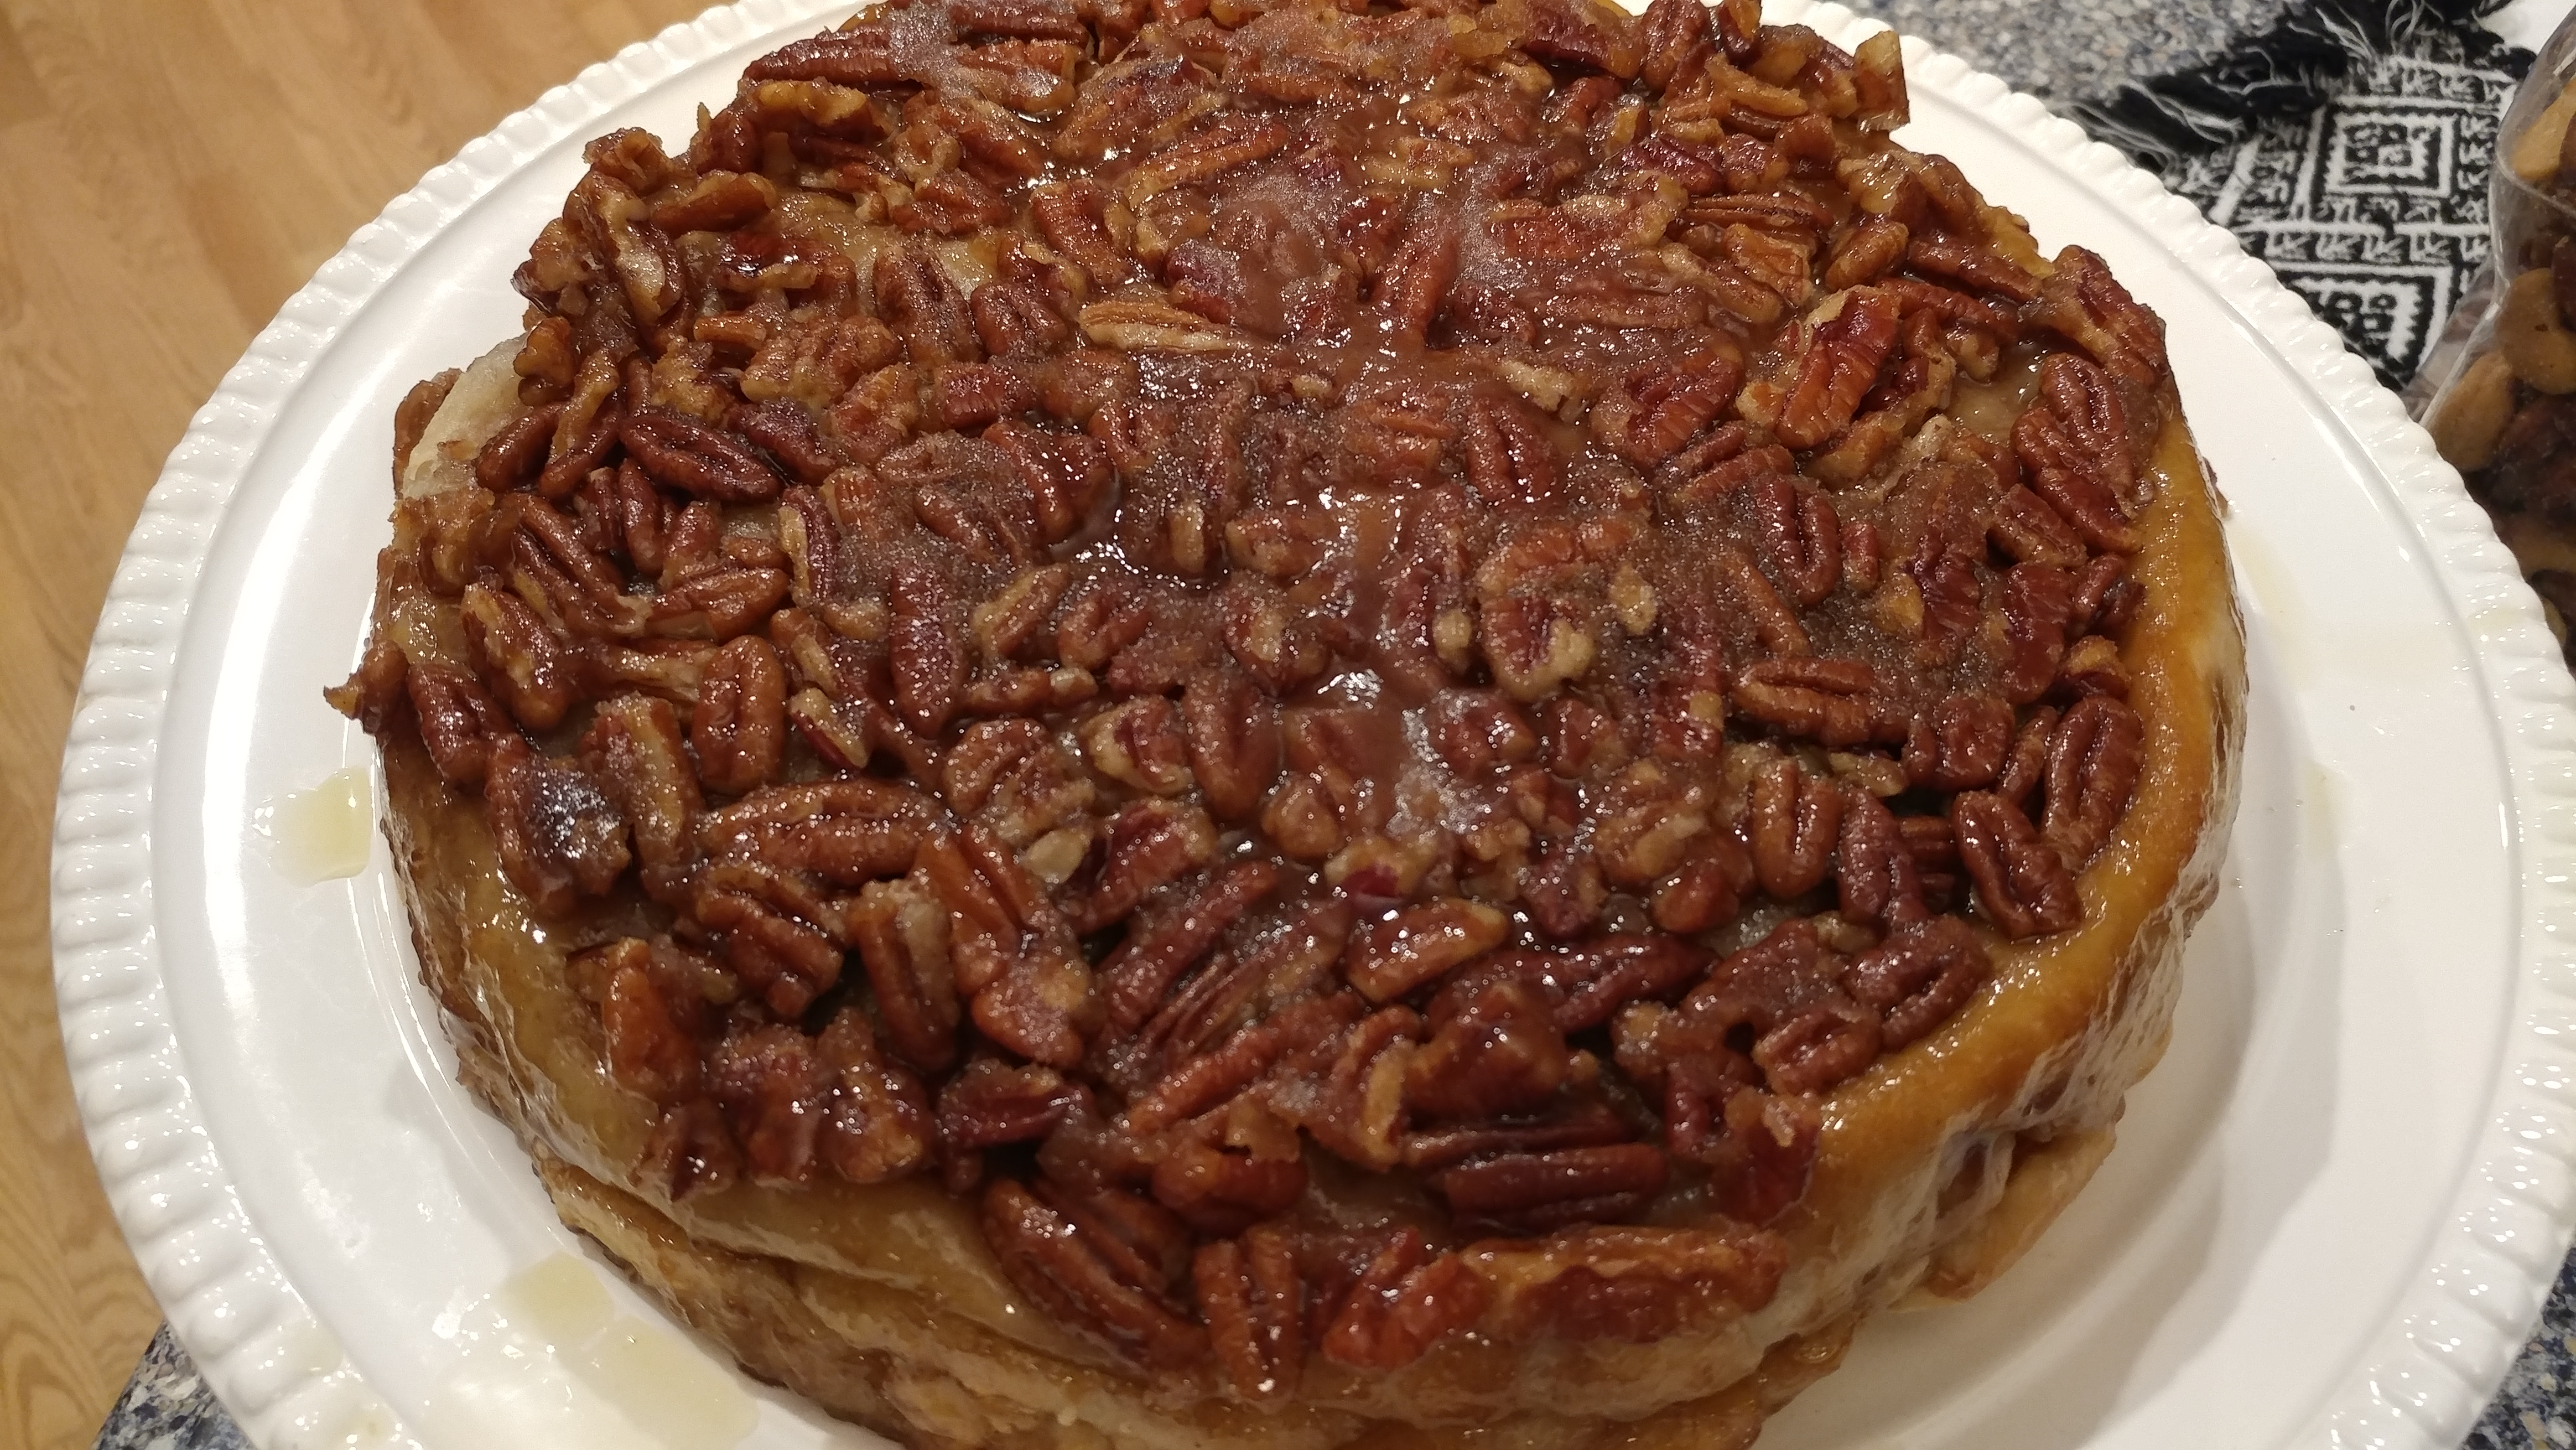 Caramel Pecan Apple Pie Tina Maus